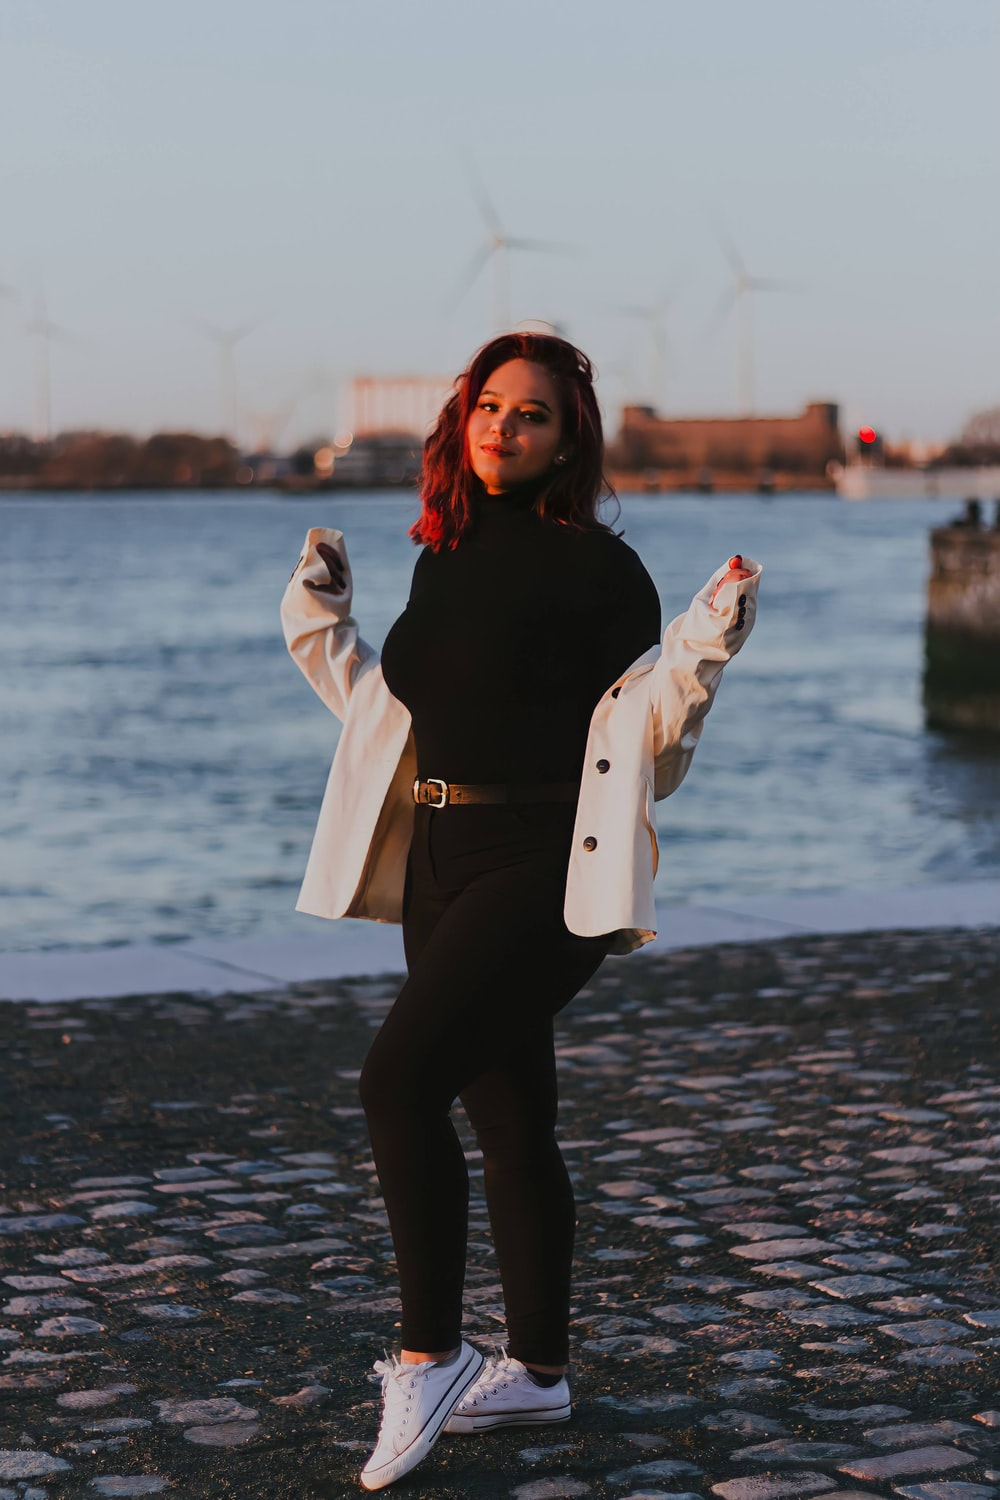 woman in black jacket and black pants standing on wet ground